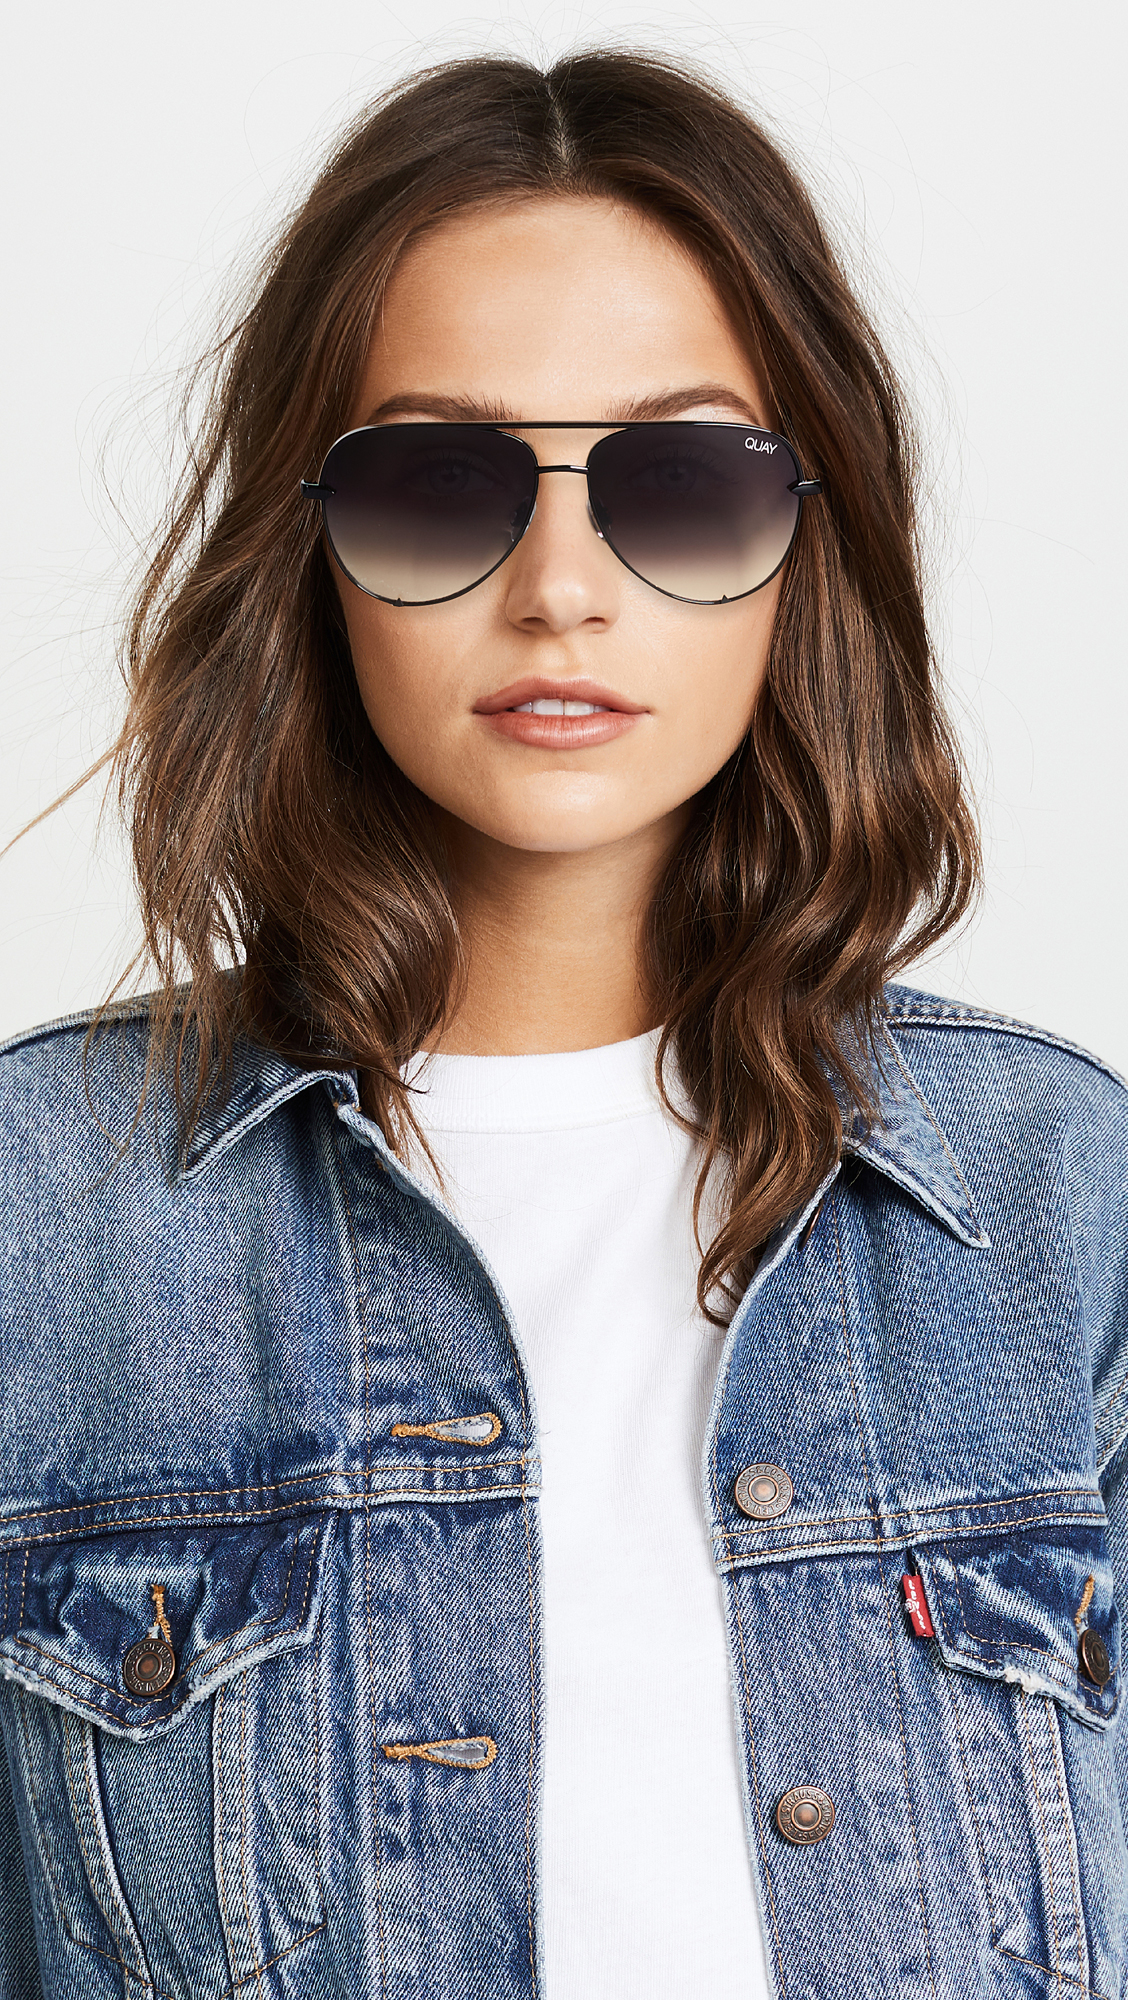 f6fe5c9898 Quay x Desi Perkins High Key Mini Sunglasses